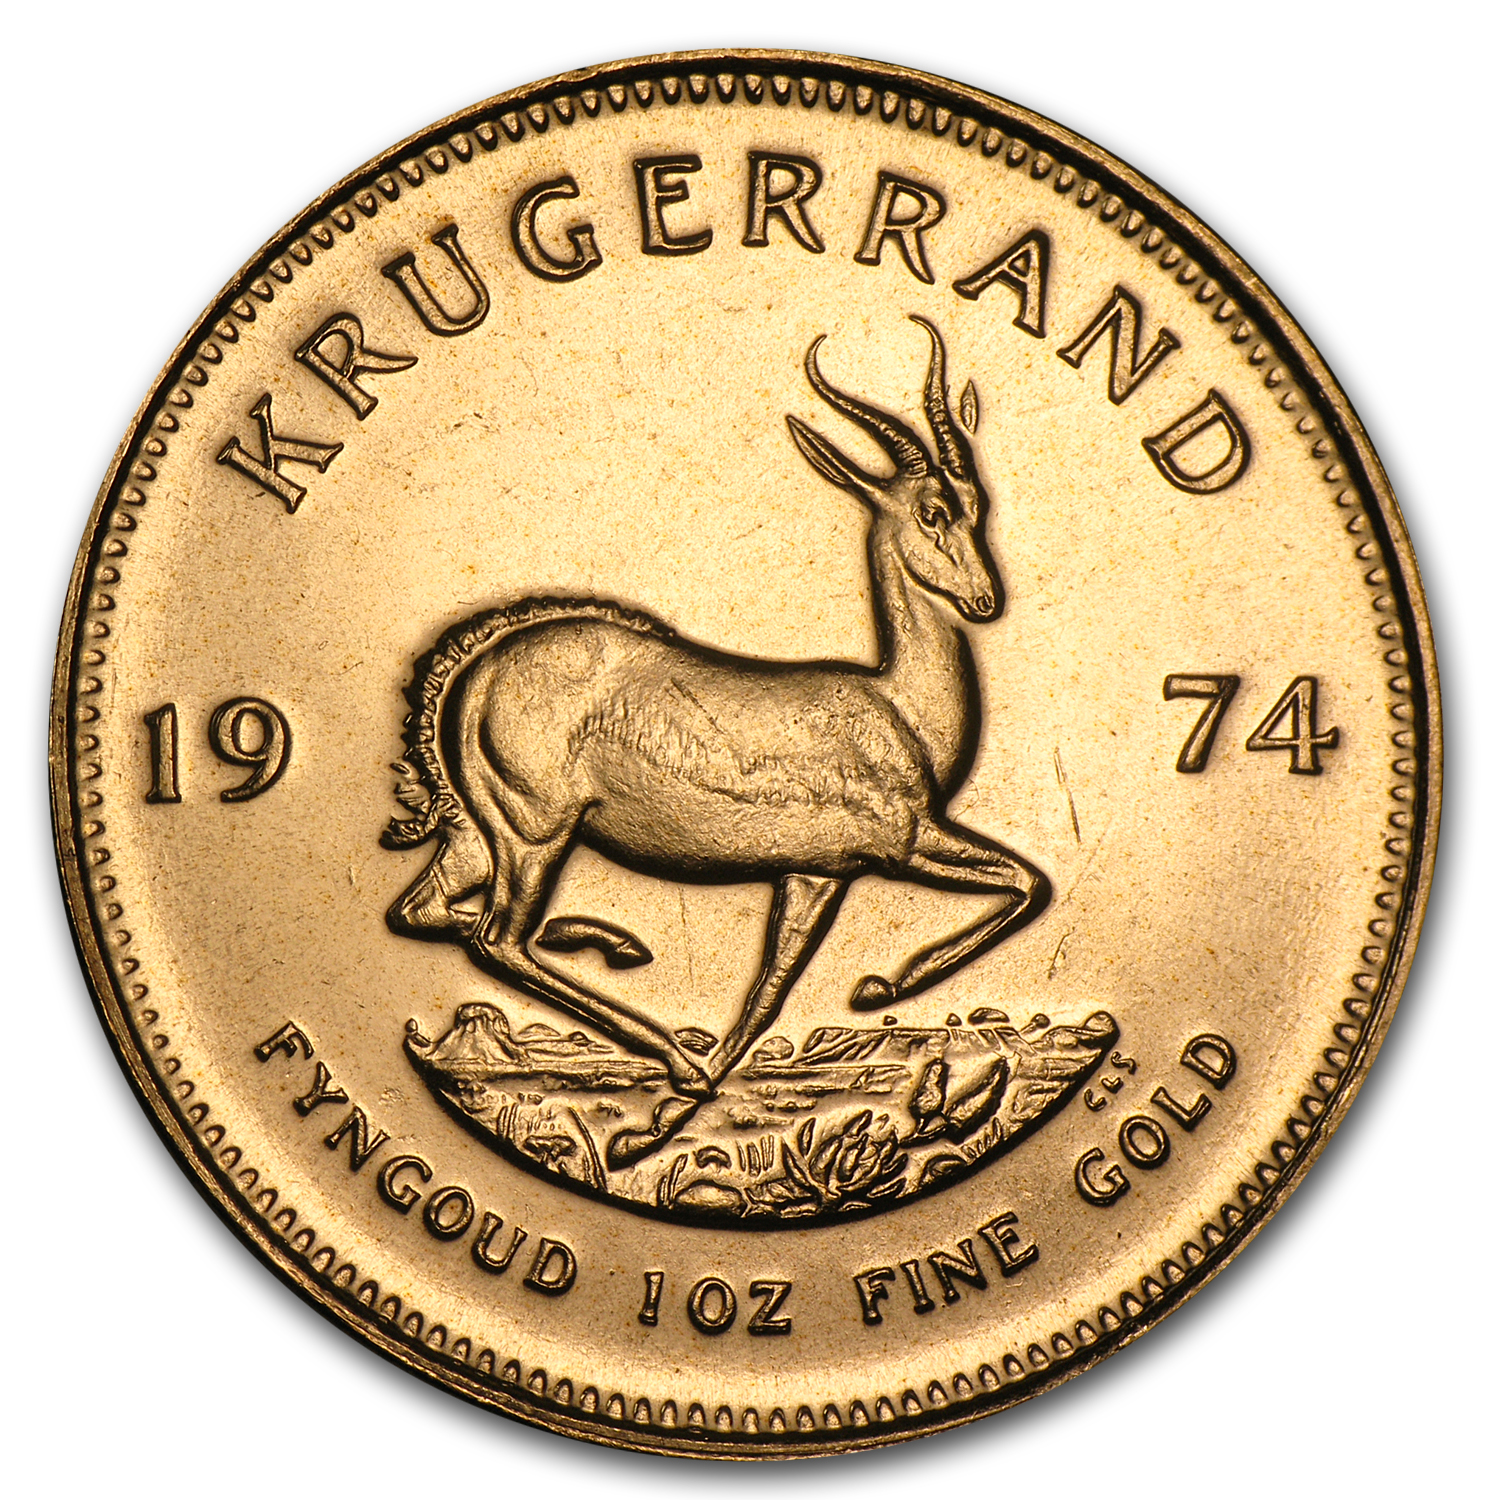 1974 1 oz Gold South African Krugerrand